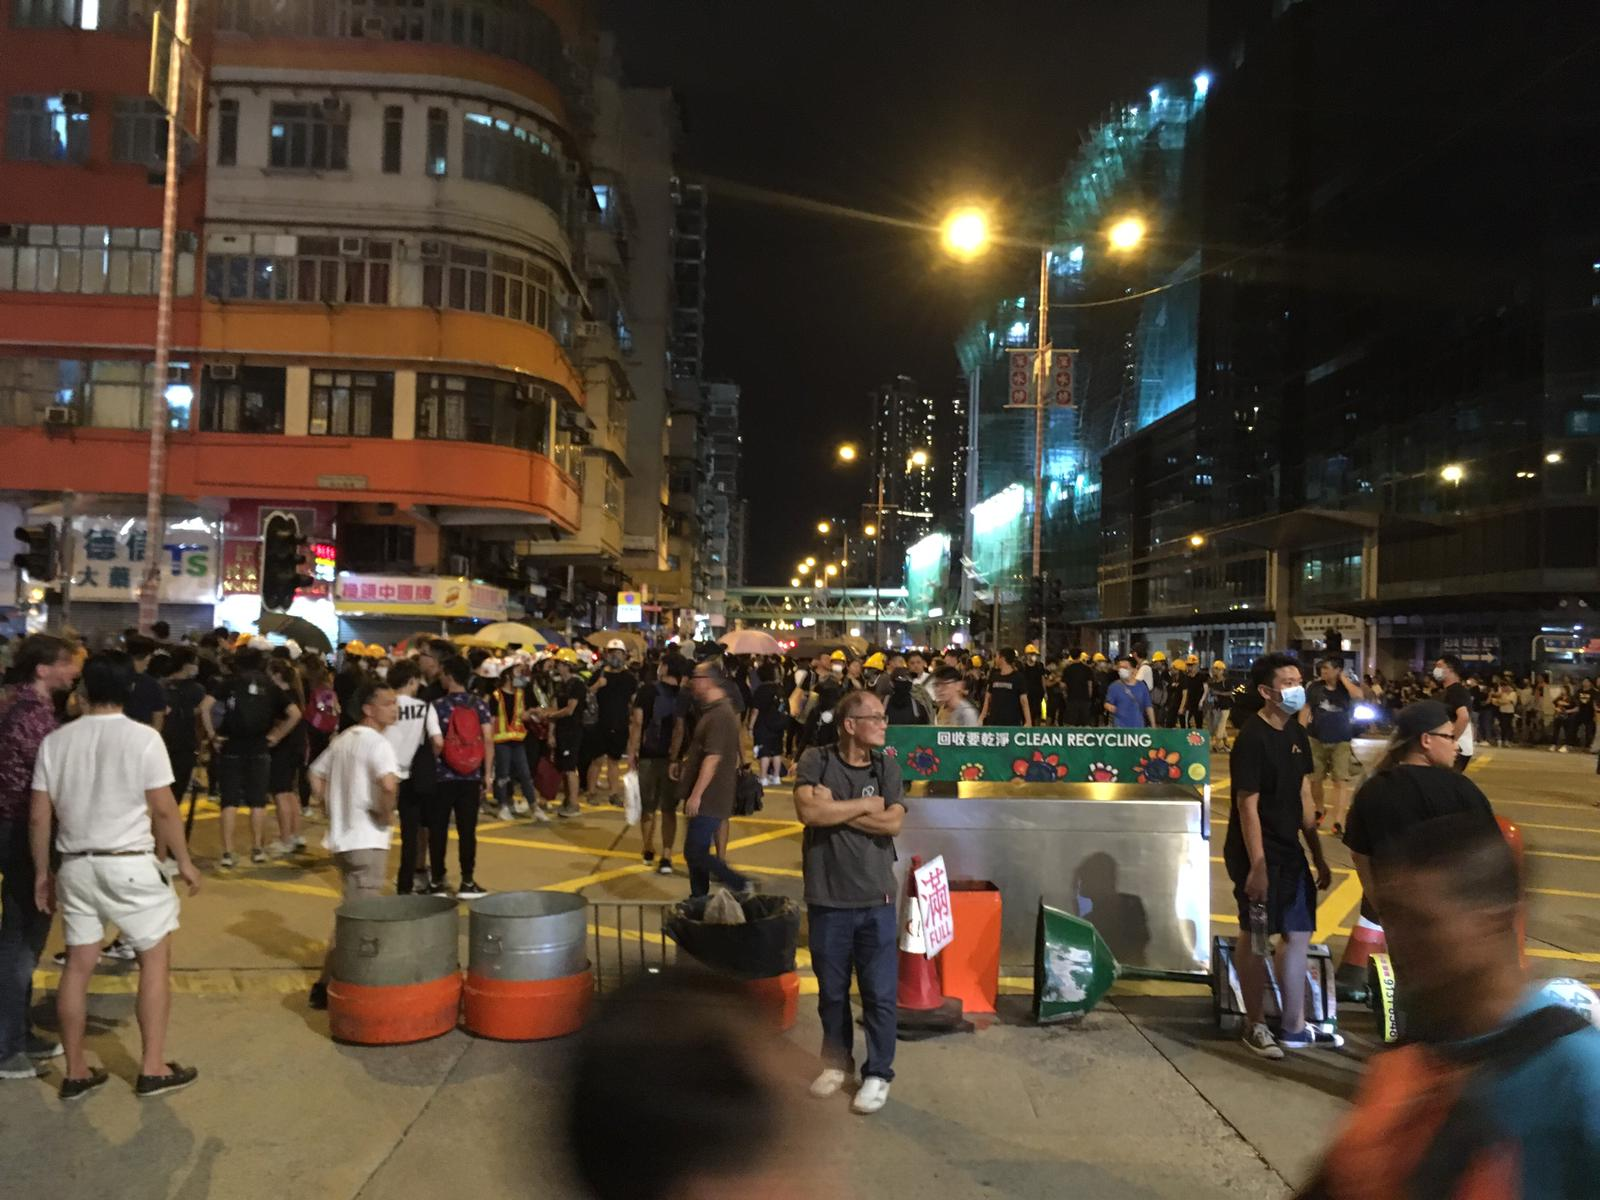 Protesters on the streets of Sham Shui Po on Monday night.